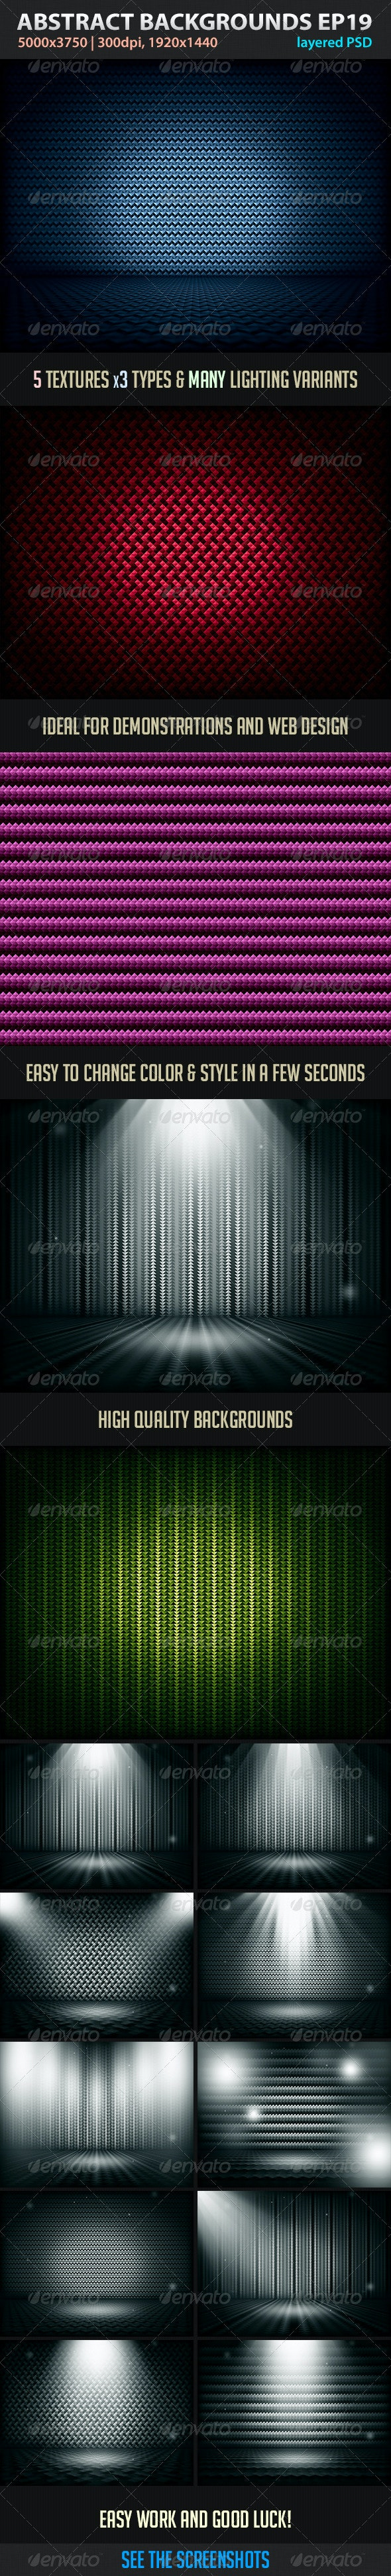 Absctract Backgrounds EP 19 - Abstract Backgrounds